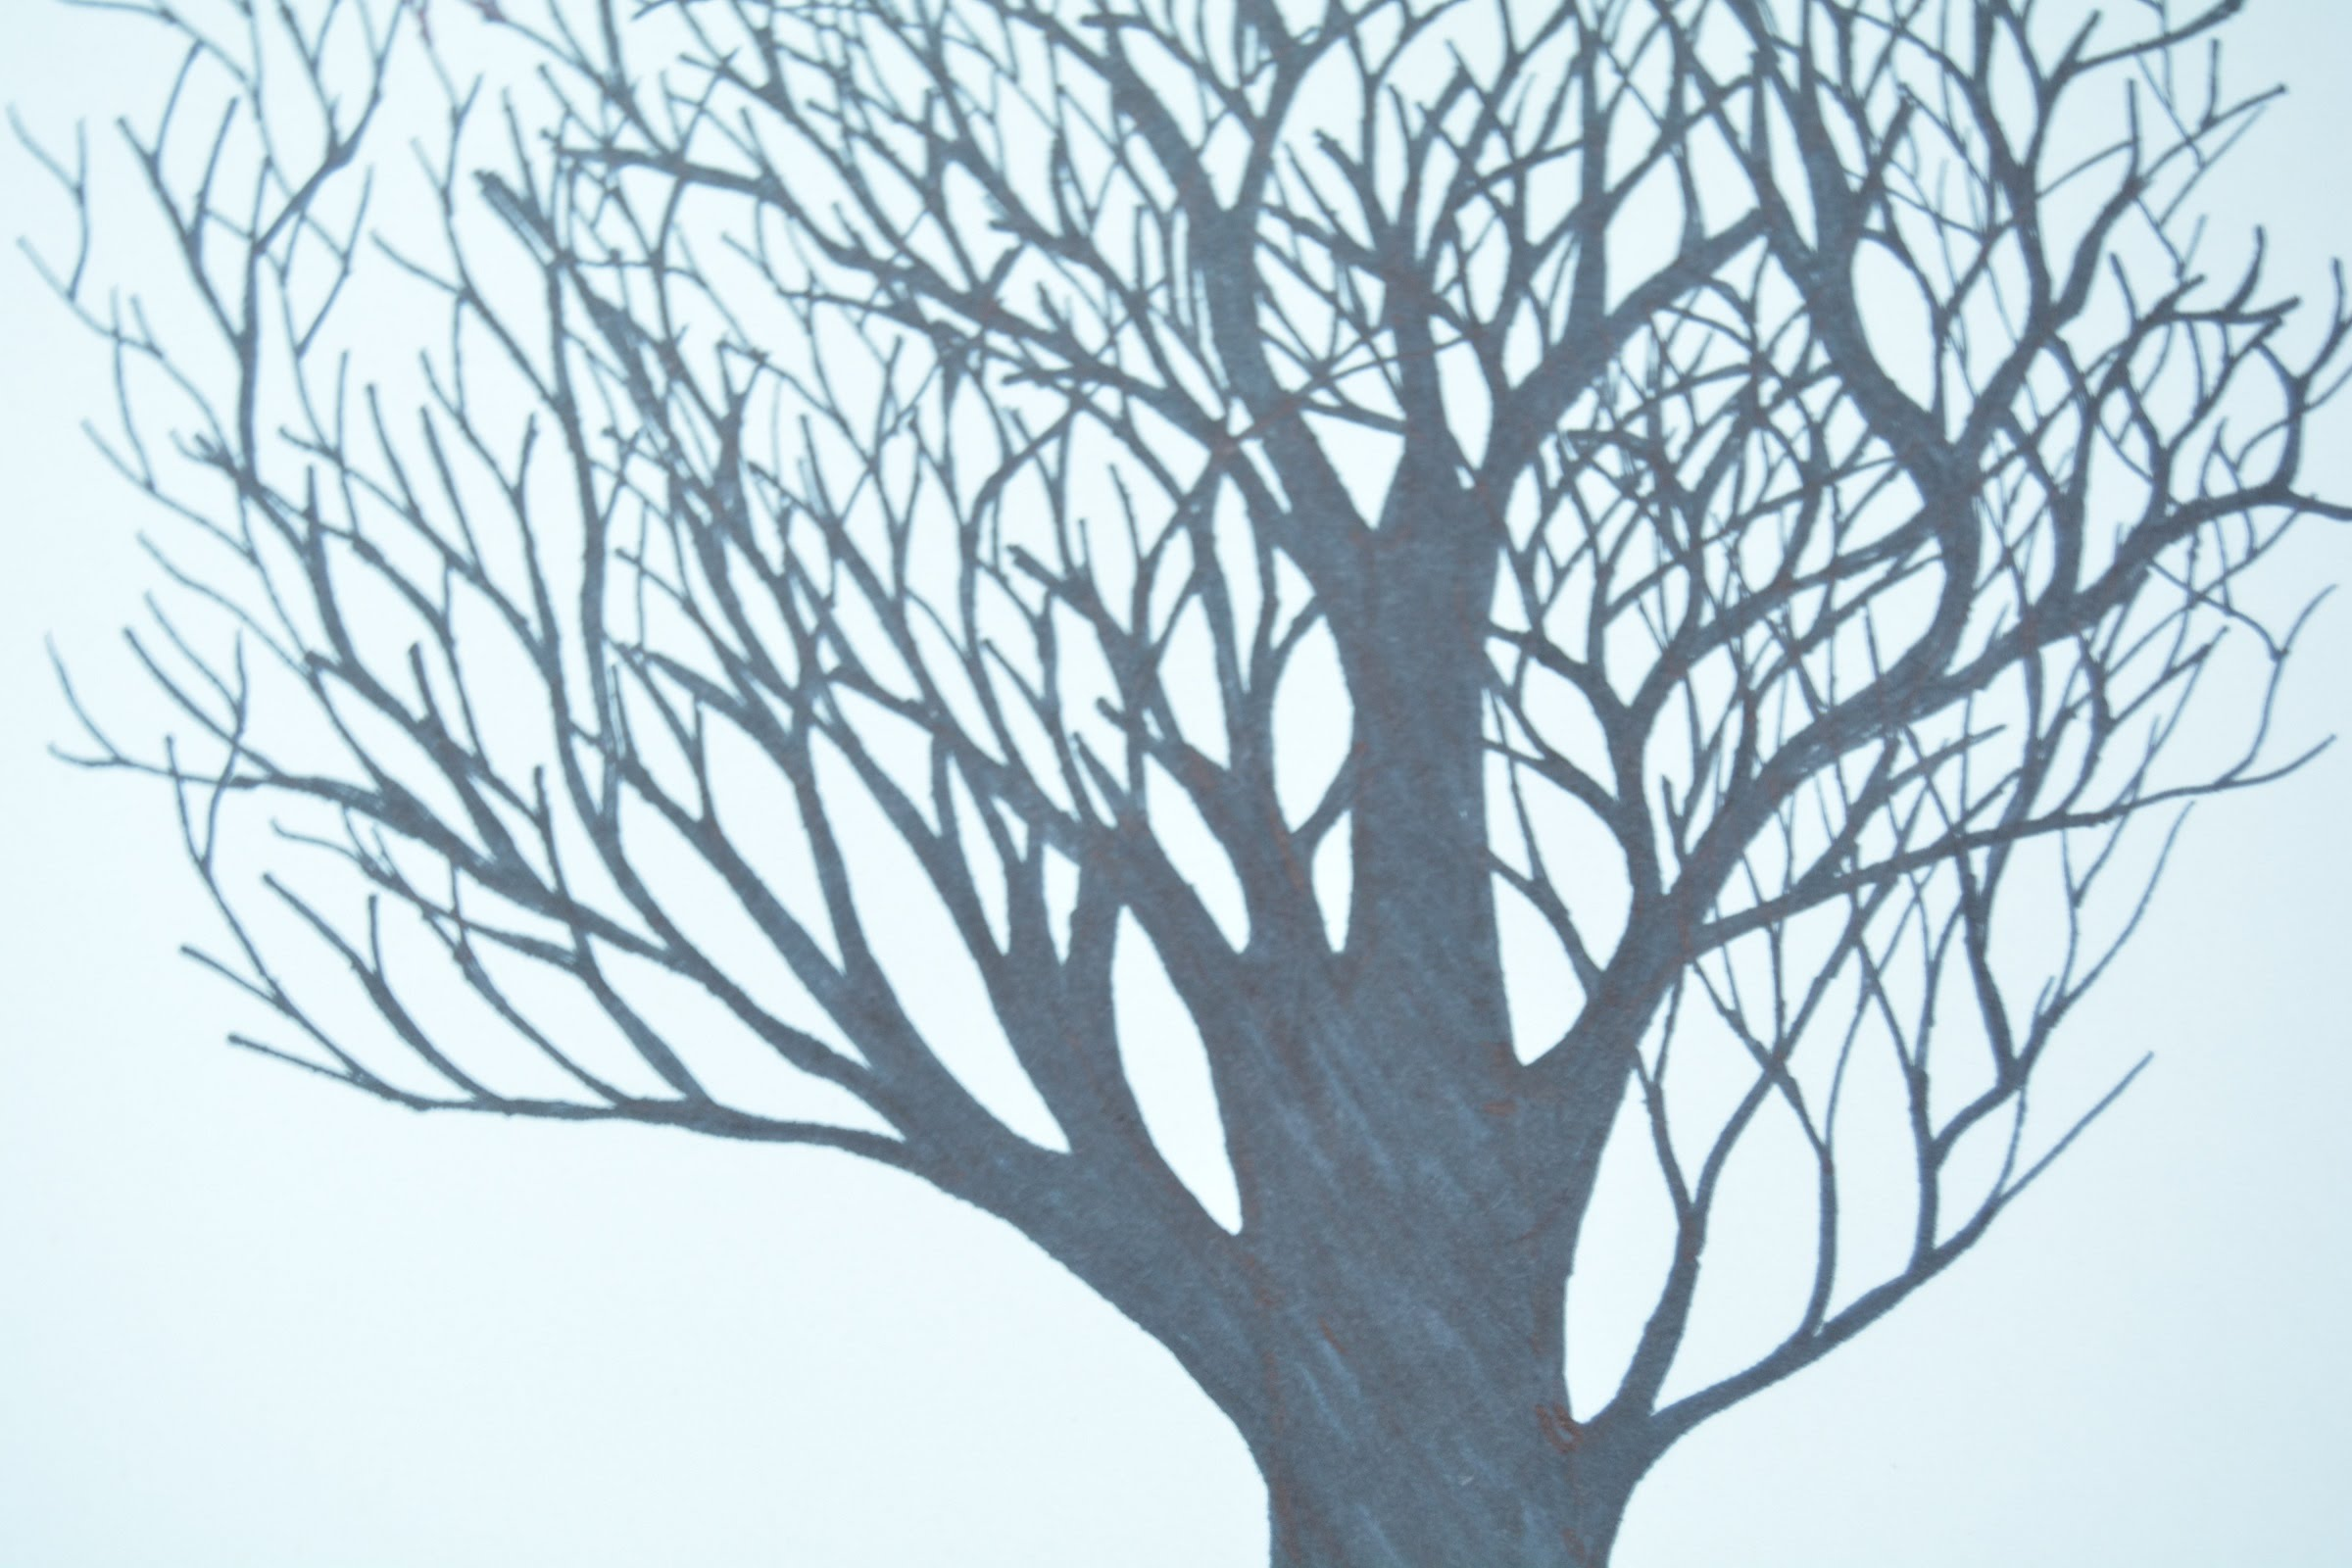 2400x1600 How To Draw A Tree Without Leaves